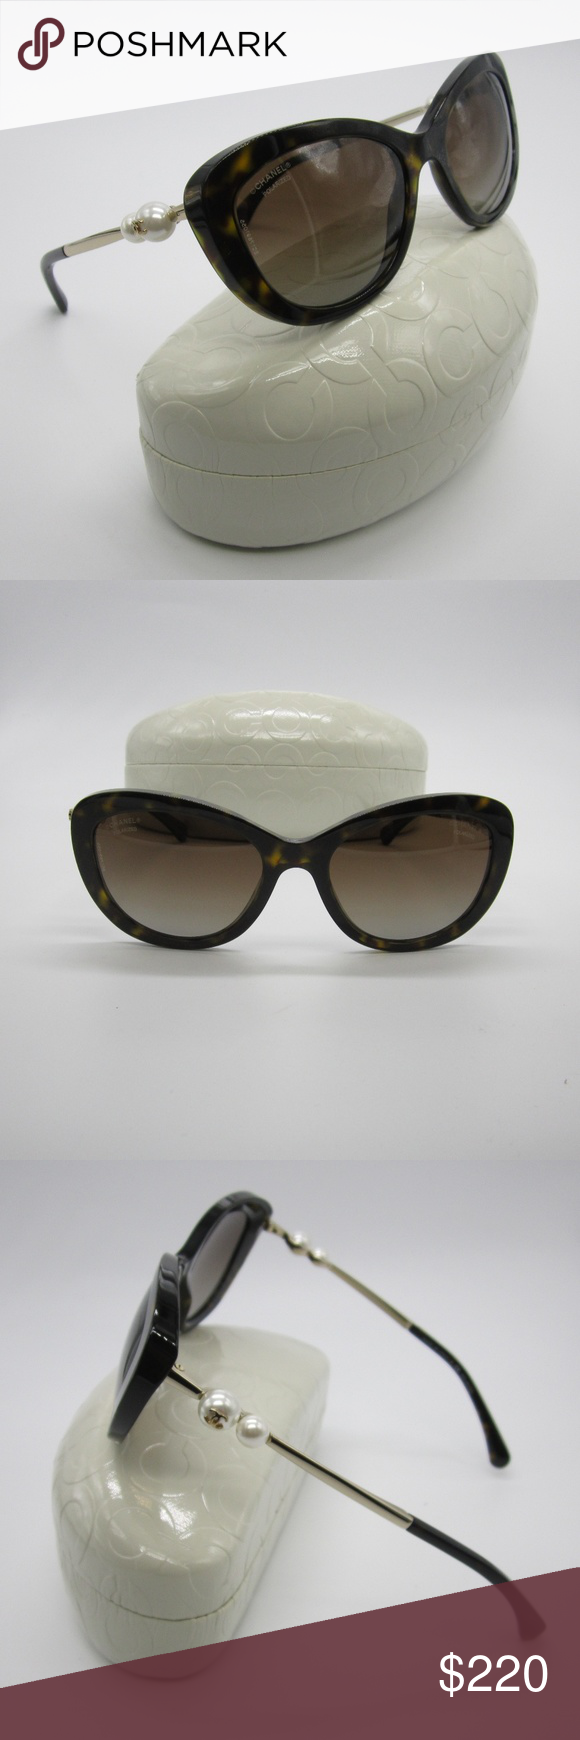 3c9921d9ce477 Chanel 5340-H Polarized Sunglasses Italy  ELL410 Chanel 5340-H c.